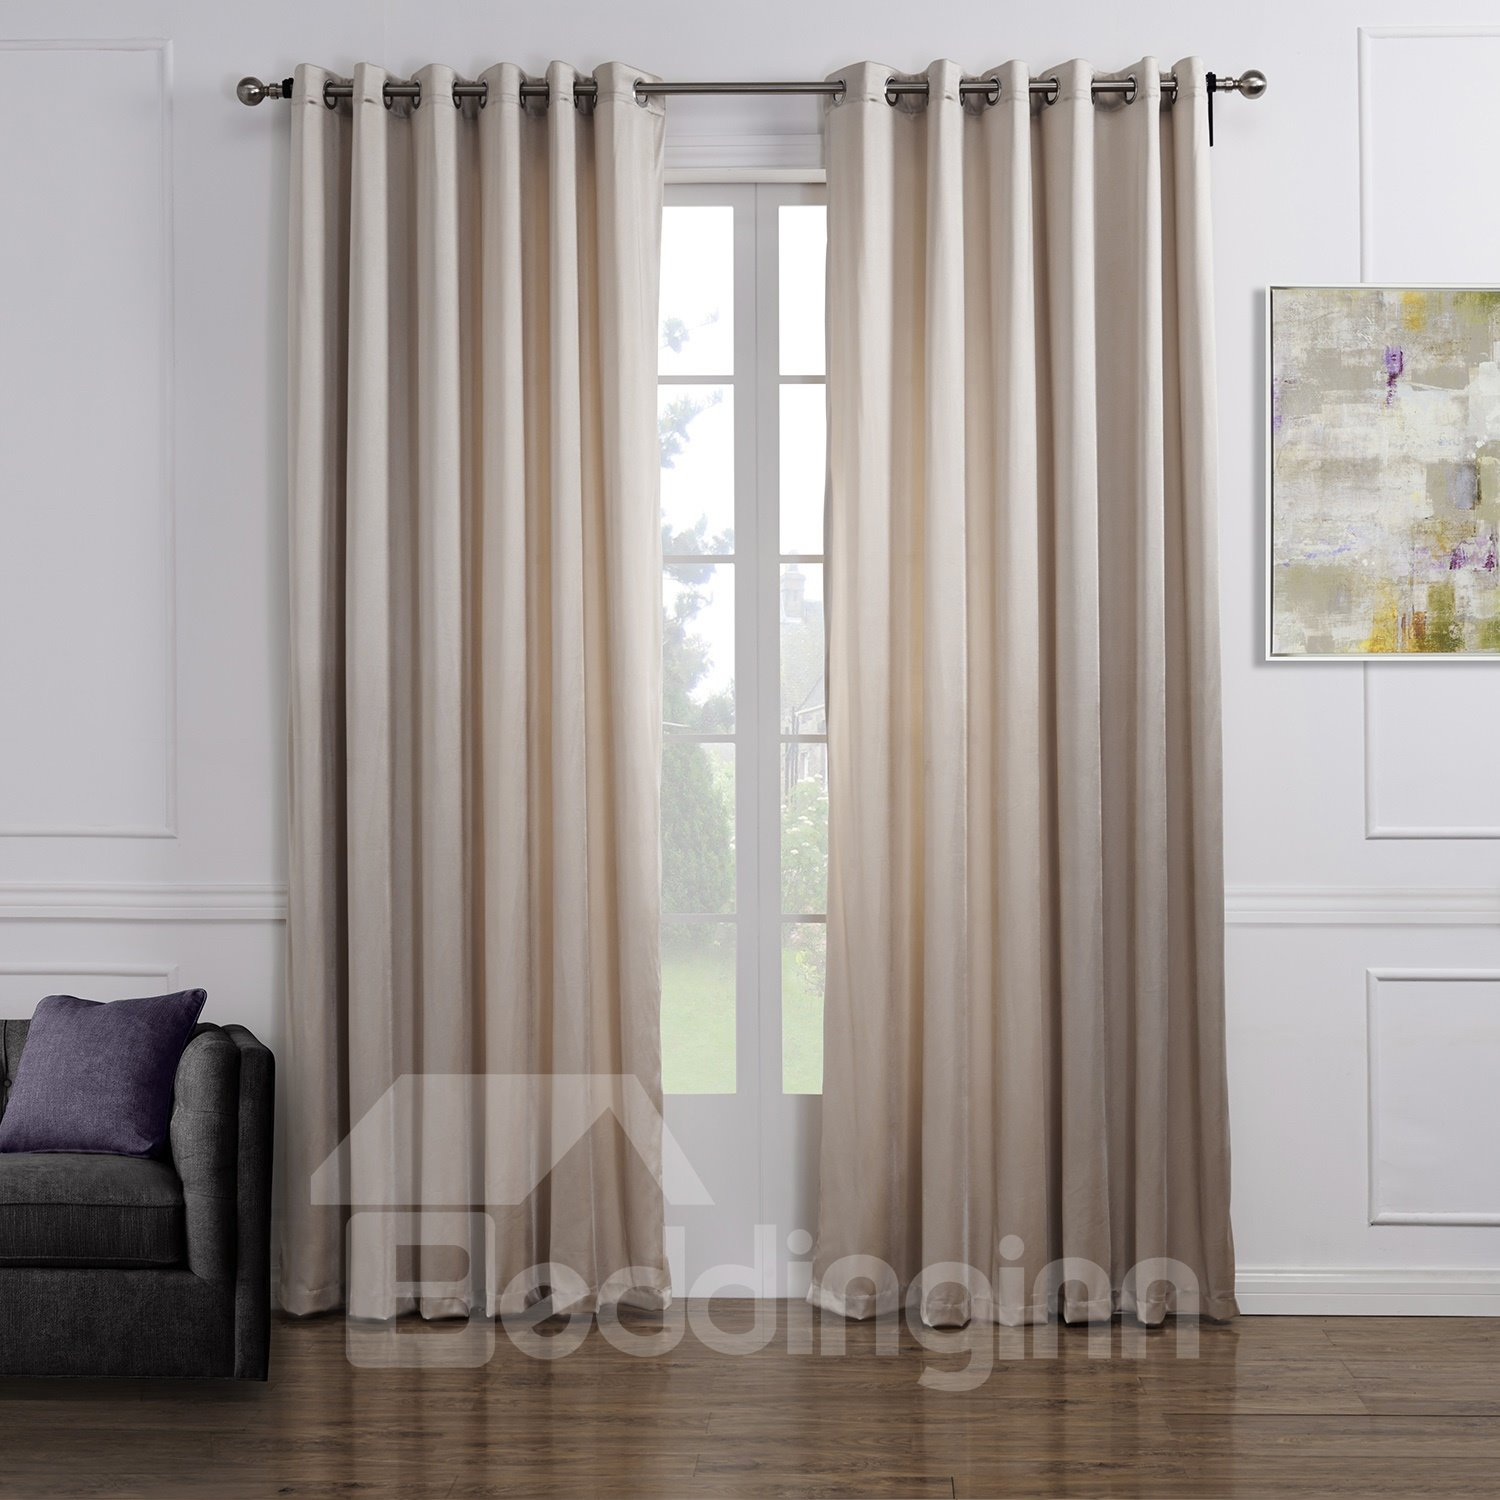 Top Selling Wonderful Pretty Grommet Top Custom Curtain